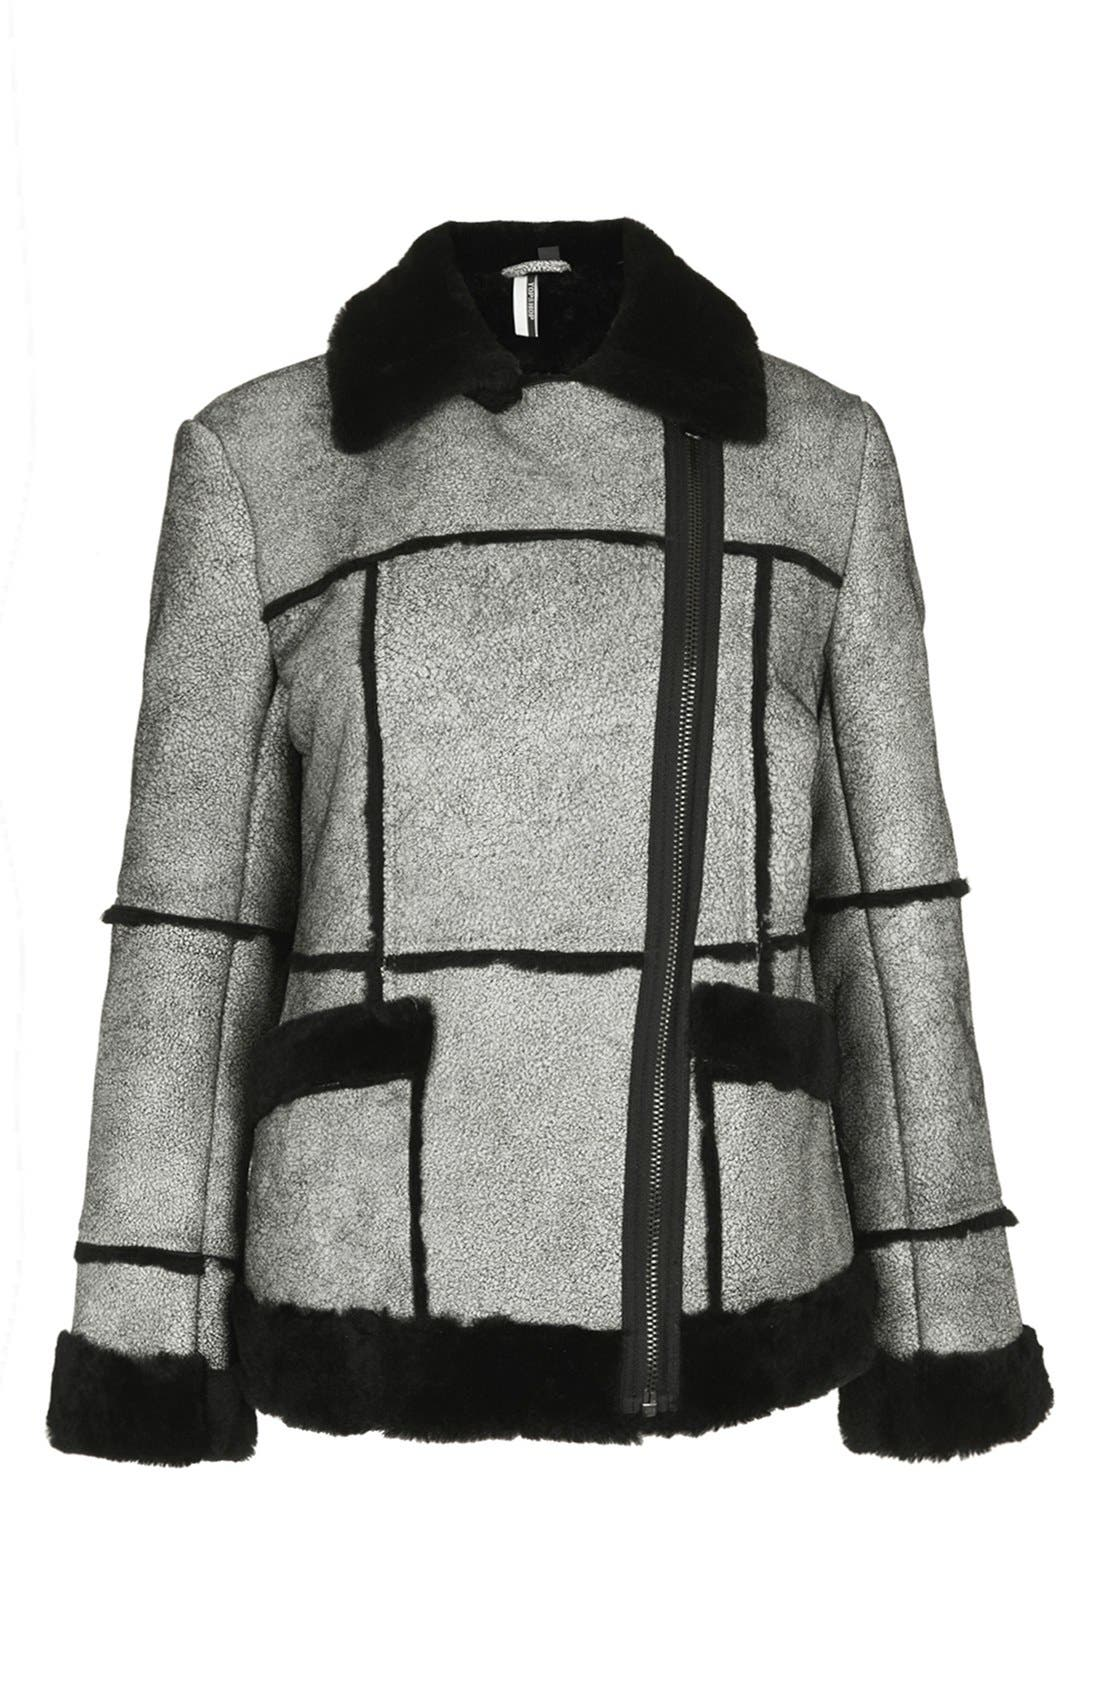 Alternate Image 1 Selected - Topshop 'The Collection Starring Kate Bosworth' Genuine Shearling Trim Jacket